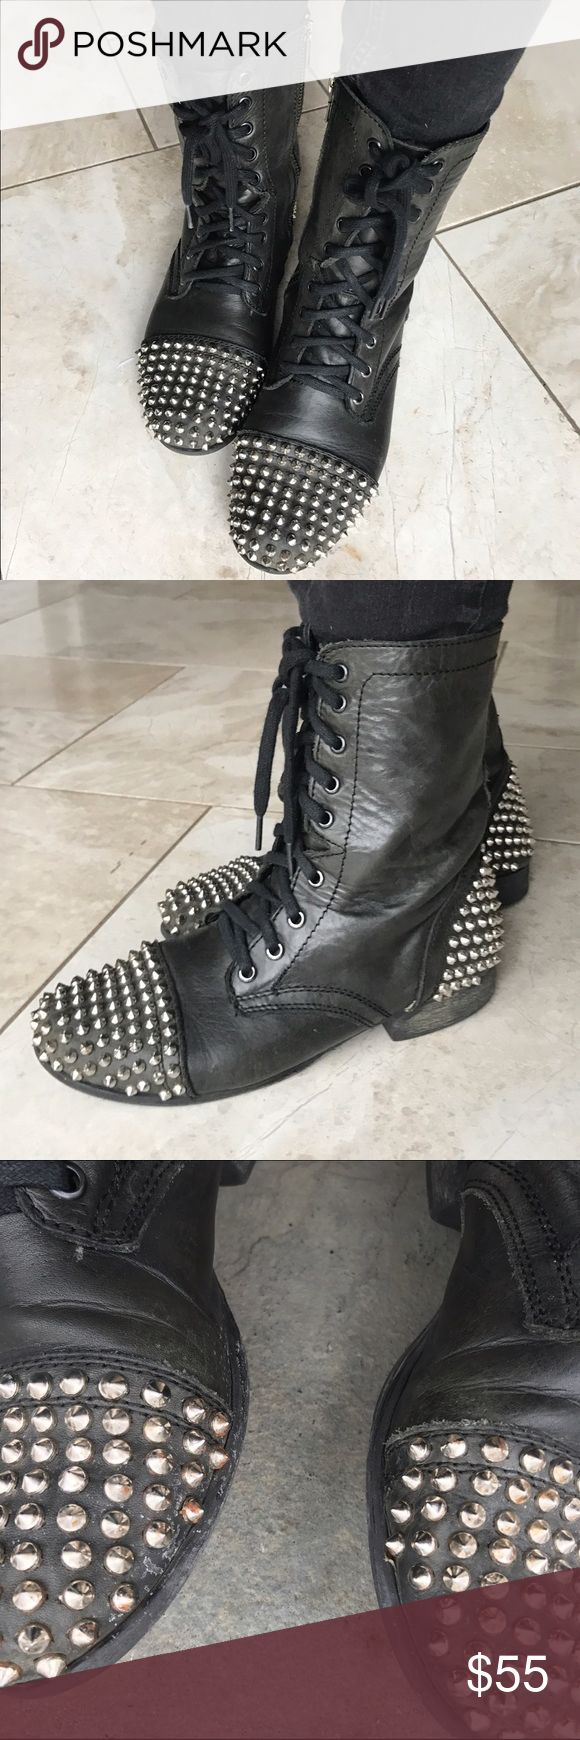 Steve Madden studded black combat boots Black leather studded combat boots in used condition. Size 7.5, but would fit an 8. I wore these and I am an 8-8.5. These have been well loved; the leather looks a a little aged, and there is some wear by the big toe (see pic). I would be happy to share additional photos. No trades, but all offers considered. Steve Madden Shoes Combat & Moto Boots